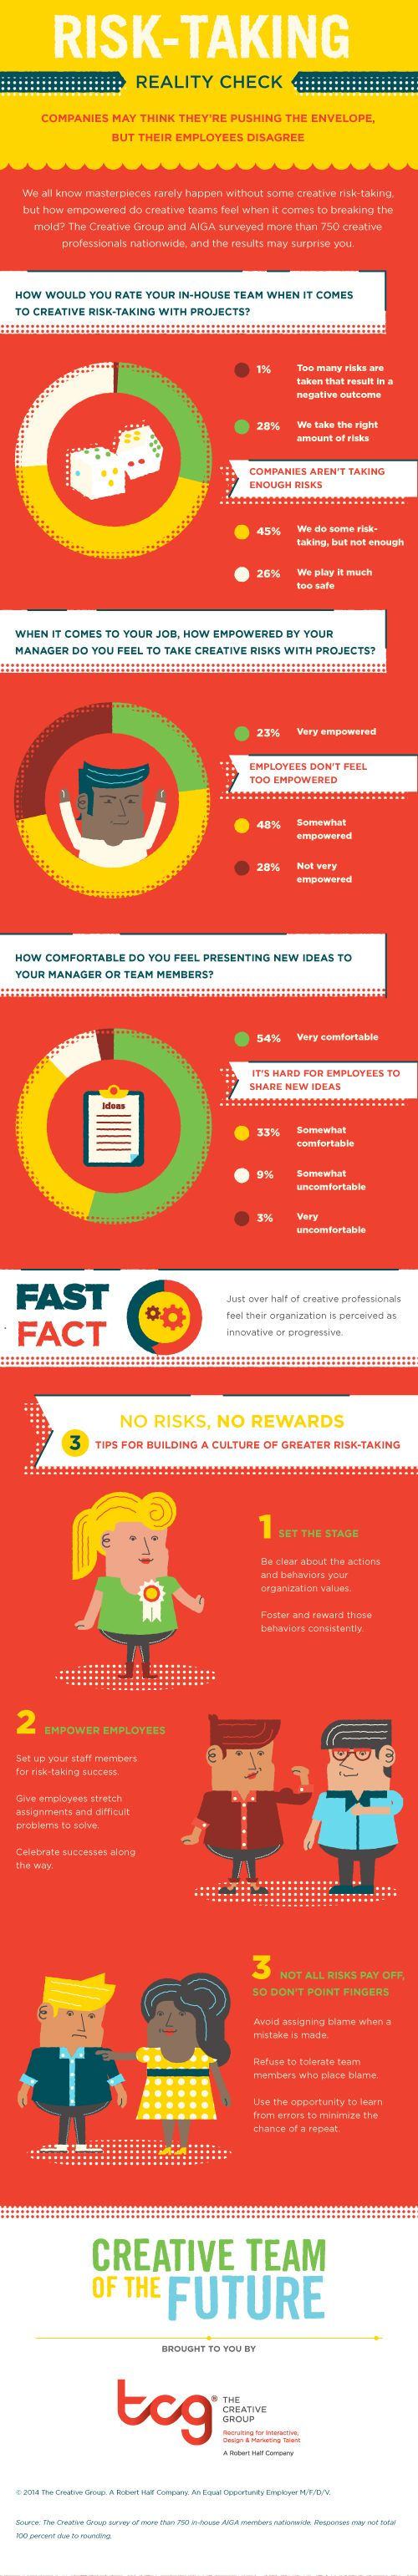 best images about workplace news creative employees say companies play it too safe creative campaigns according to research conducted for